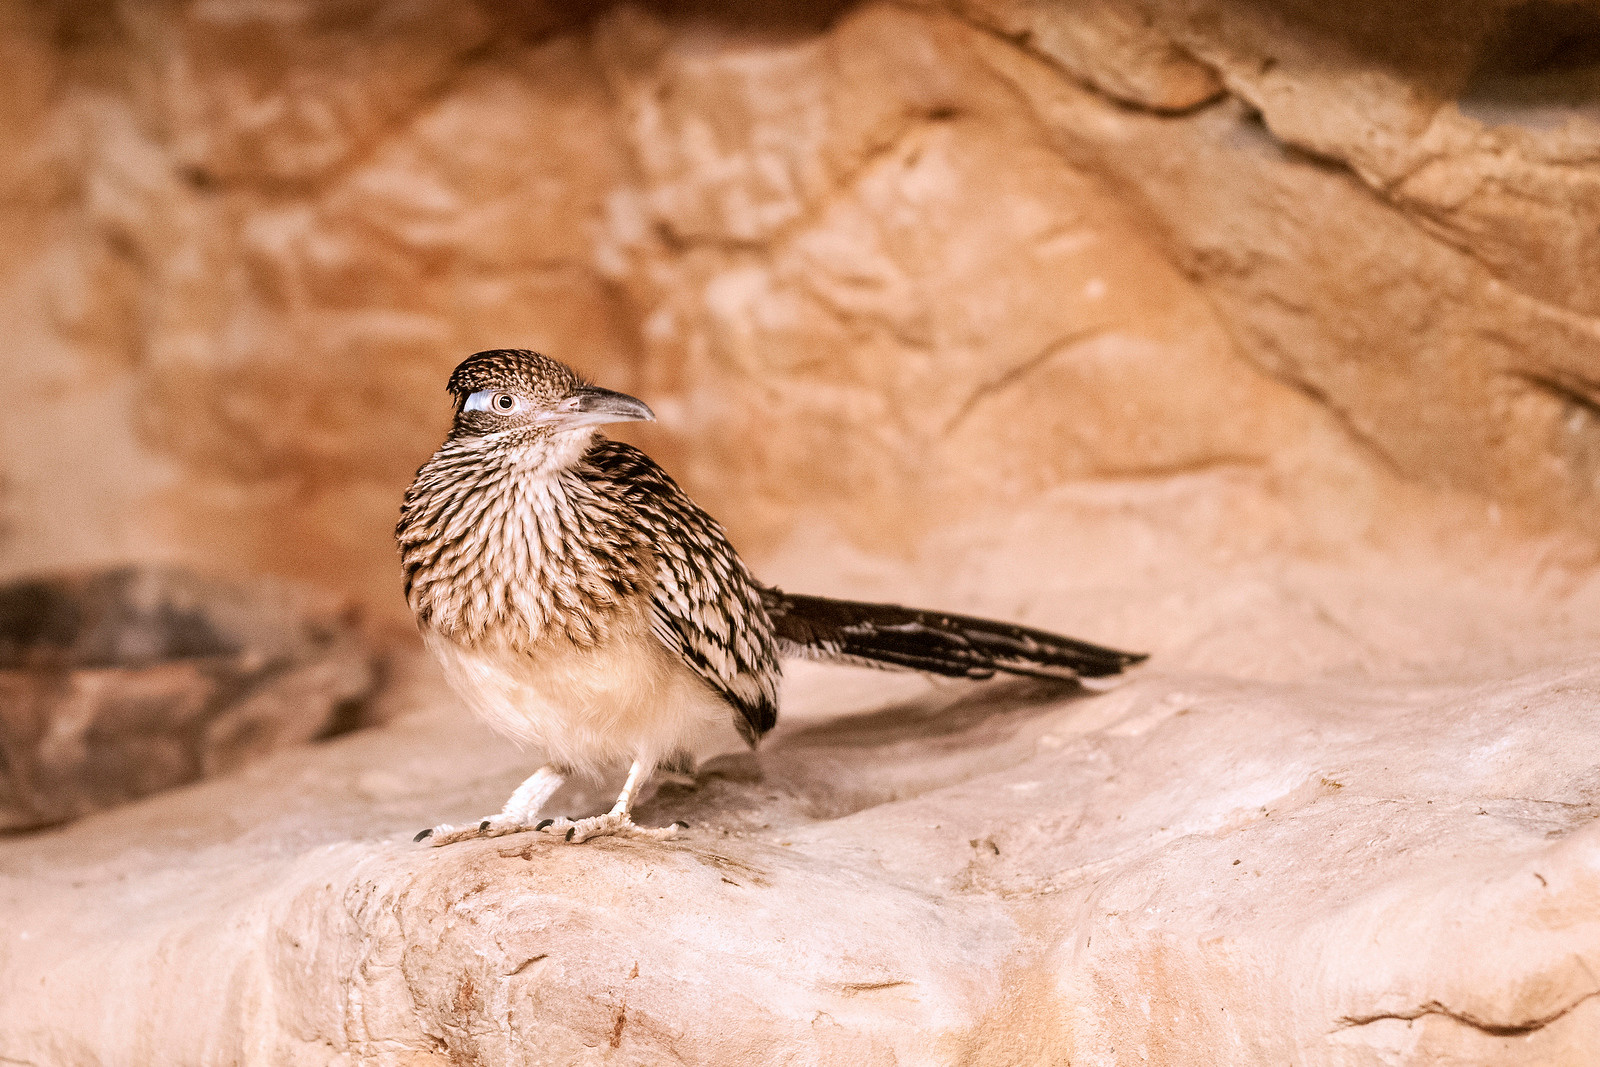 A roadrunner pauses just long enough for a photo at the Chattanooga Zoo in Chattanooga, TN on Monday, July 20, 2015. Copyright 2015 Jason Barnette